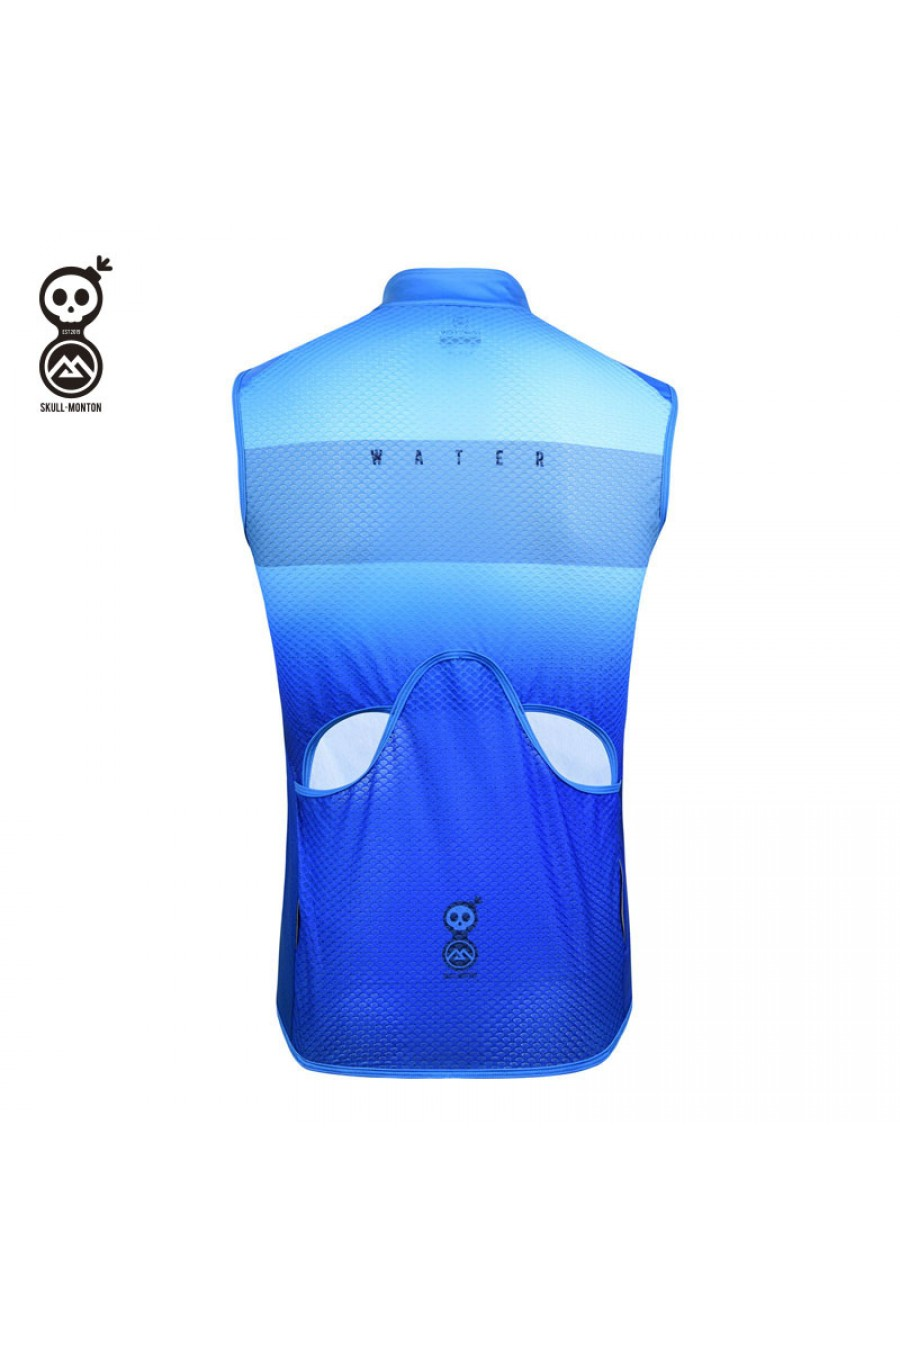 mens cycling gilet windproof online for sale blue